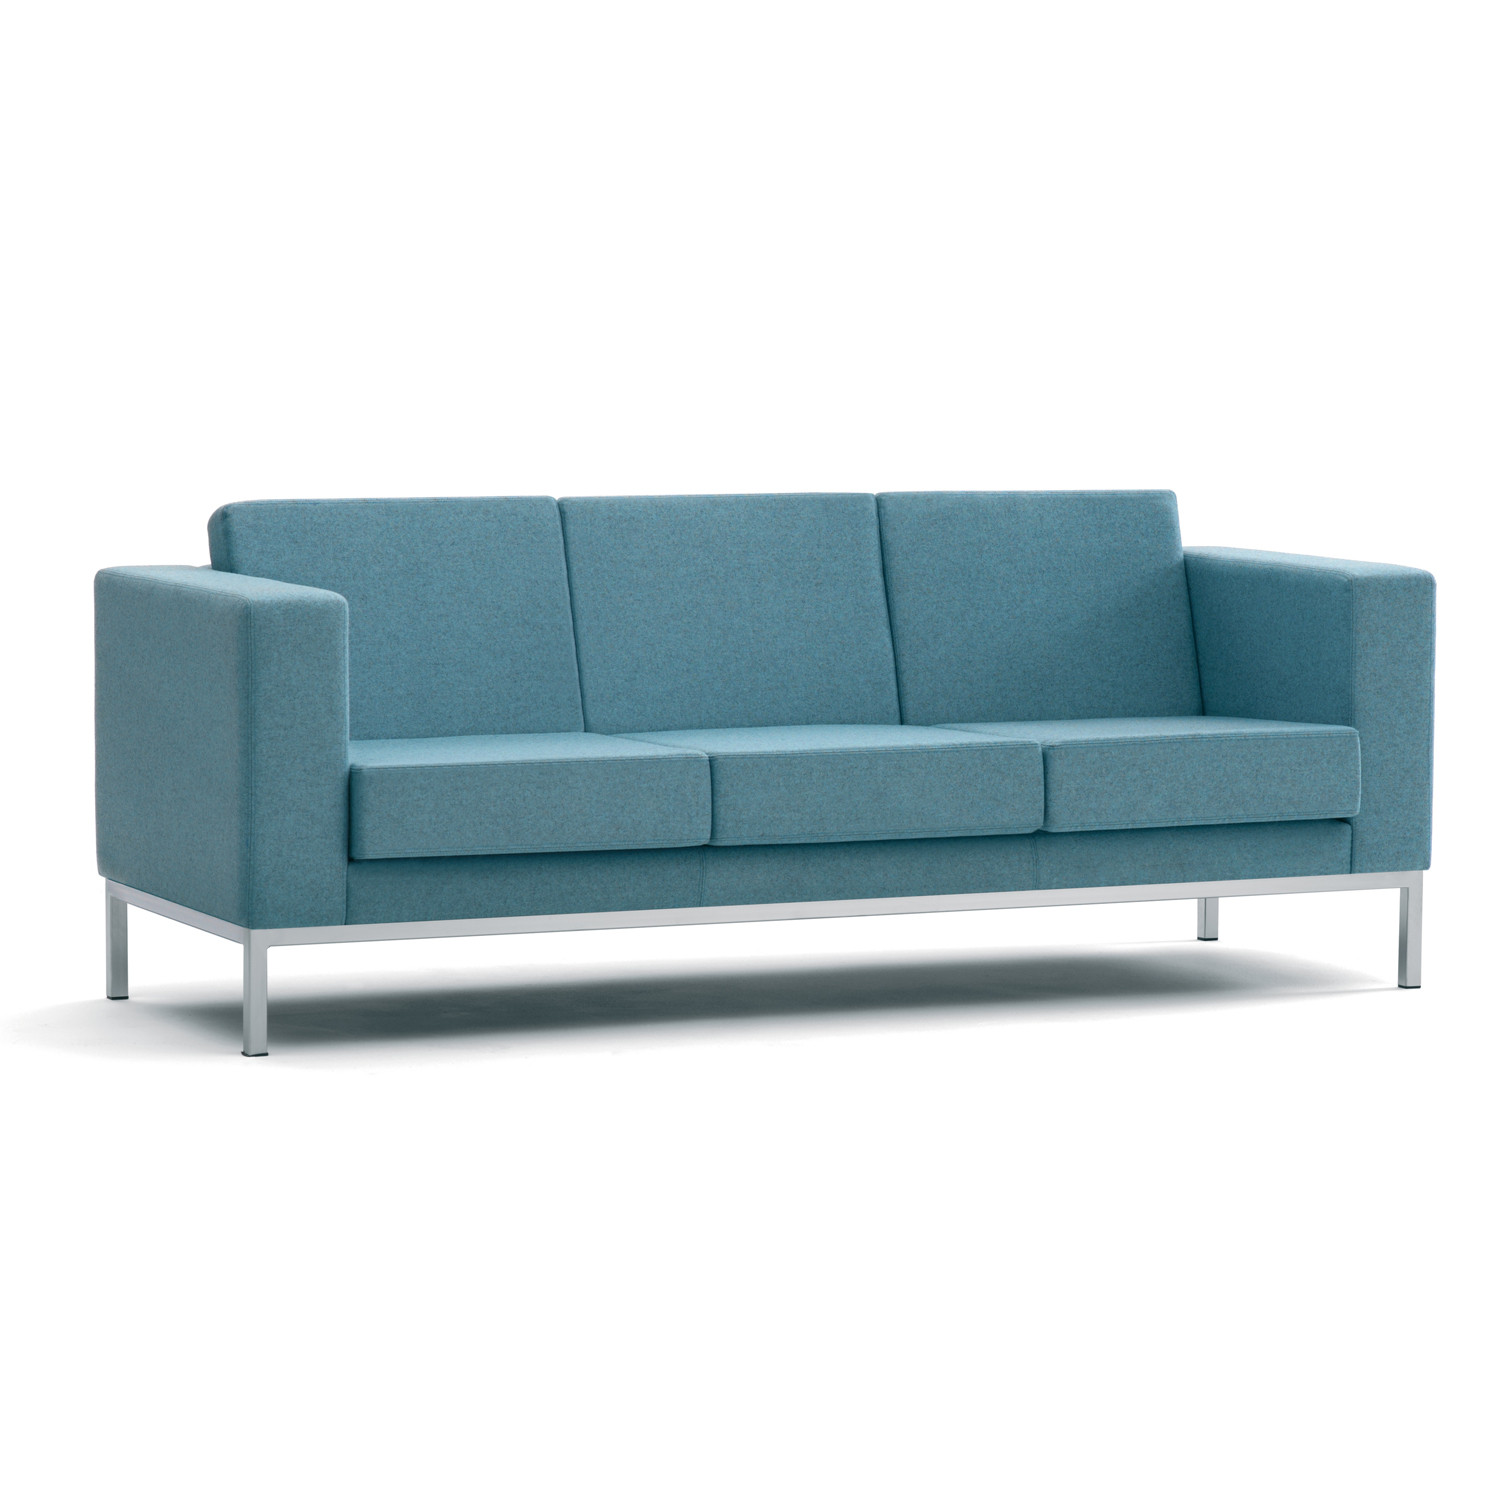 Total Sofa by Edge Furniture